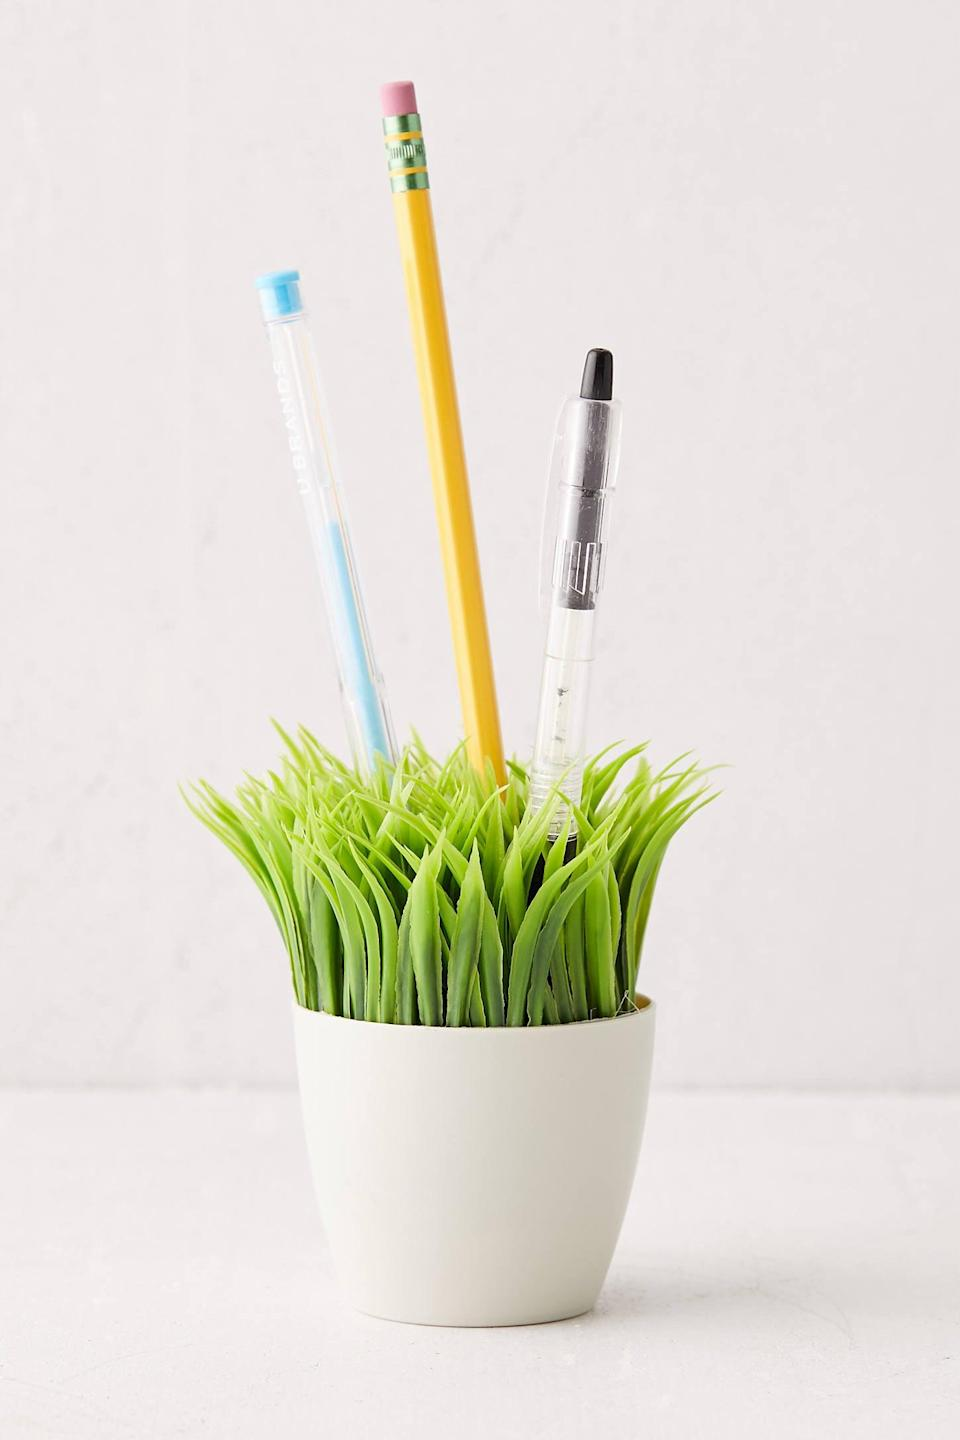 """<h2>Grass Pen Stand<br></h2><br>Attention: that random cup holding our pens is OUT and this super clever pen holder is IN. Guaranteed to make anyone constantly glued to their desk drafting stanzas smile. <br><br><em>Shop </em><a href=""""https://fave.co/31sH03T"""" rel=""""nofollow noopener"""" target=""""_blank"""" data-ylk=""""slk:Urban Outfitters"""" class=""""link rapid-noclick-resp""""><em><strong>Urban Outfitters</strong></em></a><br><br><strong>Urban Outfitters</strong> Grass Pen Stand, $, available at <a href=""""https://go.skimresources.com/?id=30283X879131&url=https%3A%2F%2Ffave.co%2F2H8AVCN"""" rel=""""nofollow noopener"""" target=""""_blank"""" data-ylk=""""slk:Urban Outfitters"""" class=""""link rapid-noclick-resp"""">Urban Outfitters</a>"""